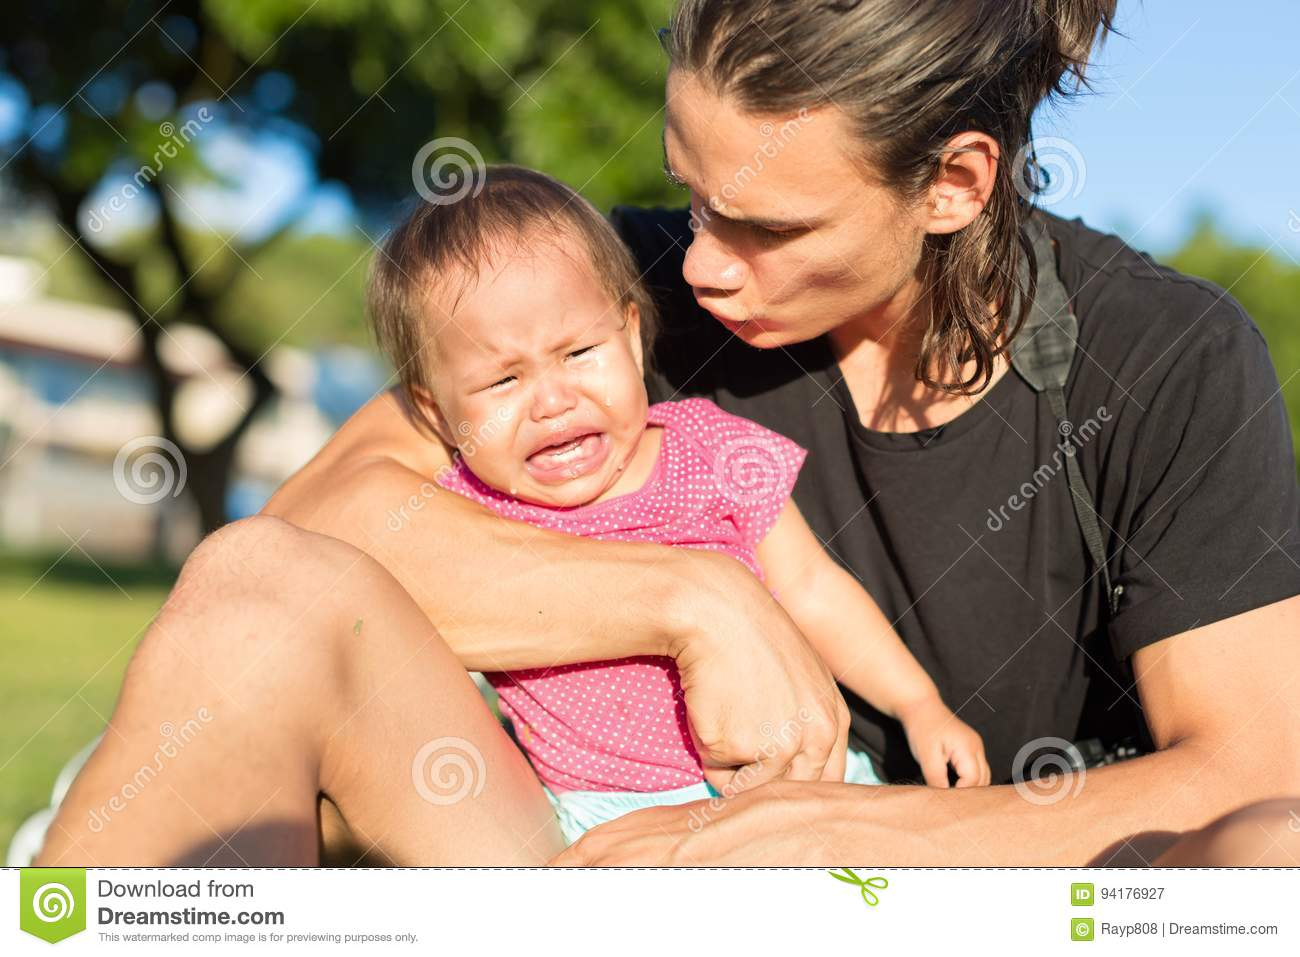 Stressed out and frustrated father tries to comfort his upset toddler daughter from crying in a park setting.